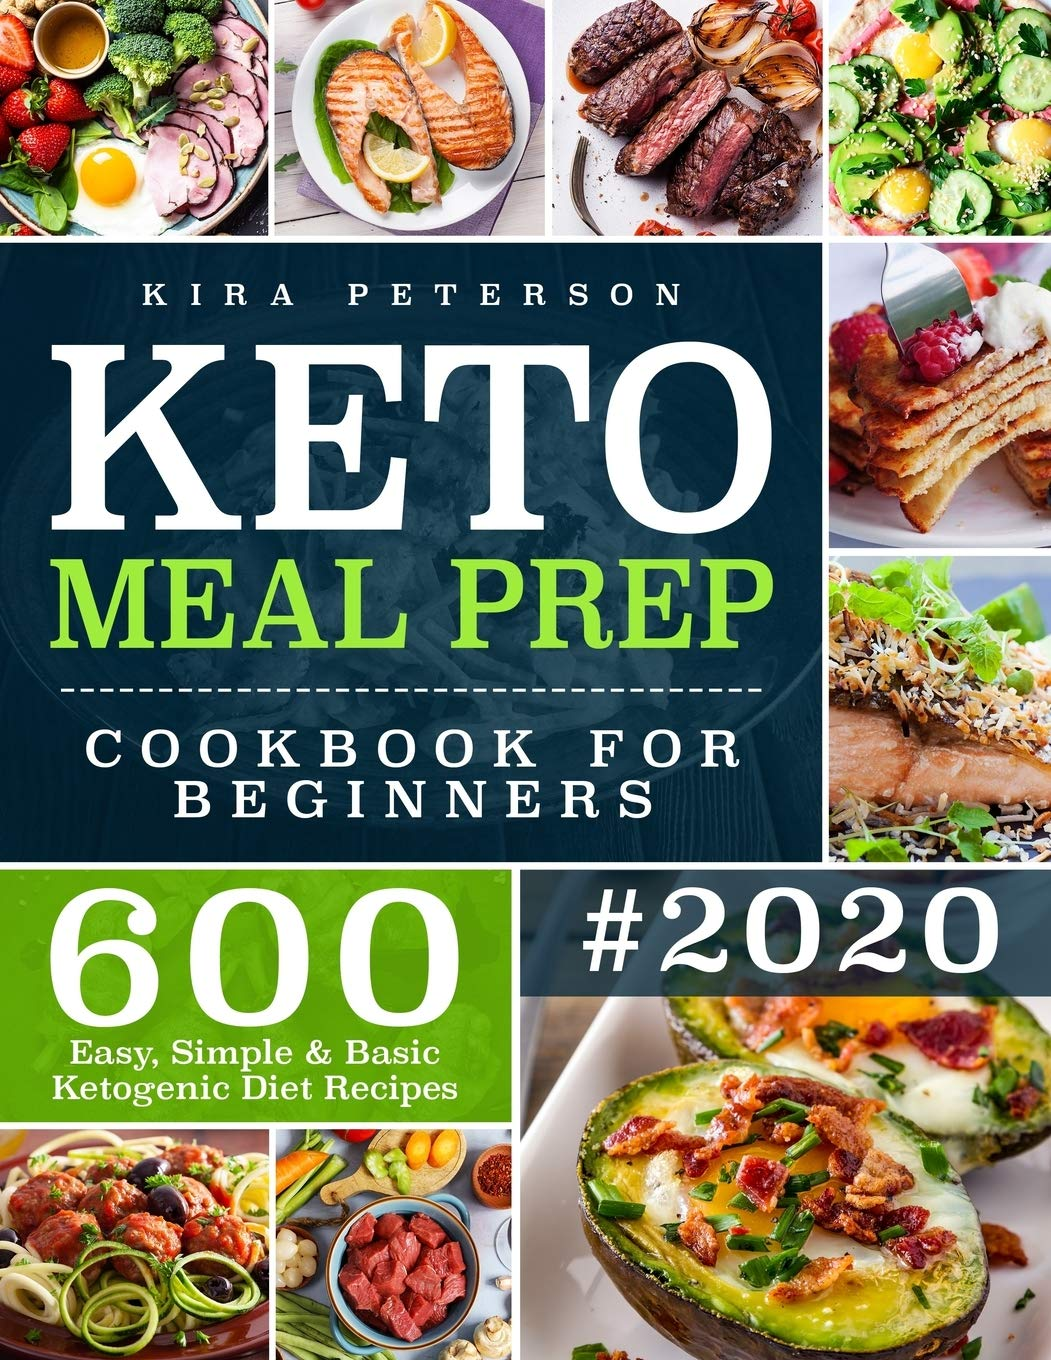 Keto Meal Prep Cookbook For Beginners 600 Easy Simple Basic Ketogenic Diet Recipes Keto Cookbook Peterson Kira 9781673455984 Amazon Com Books